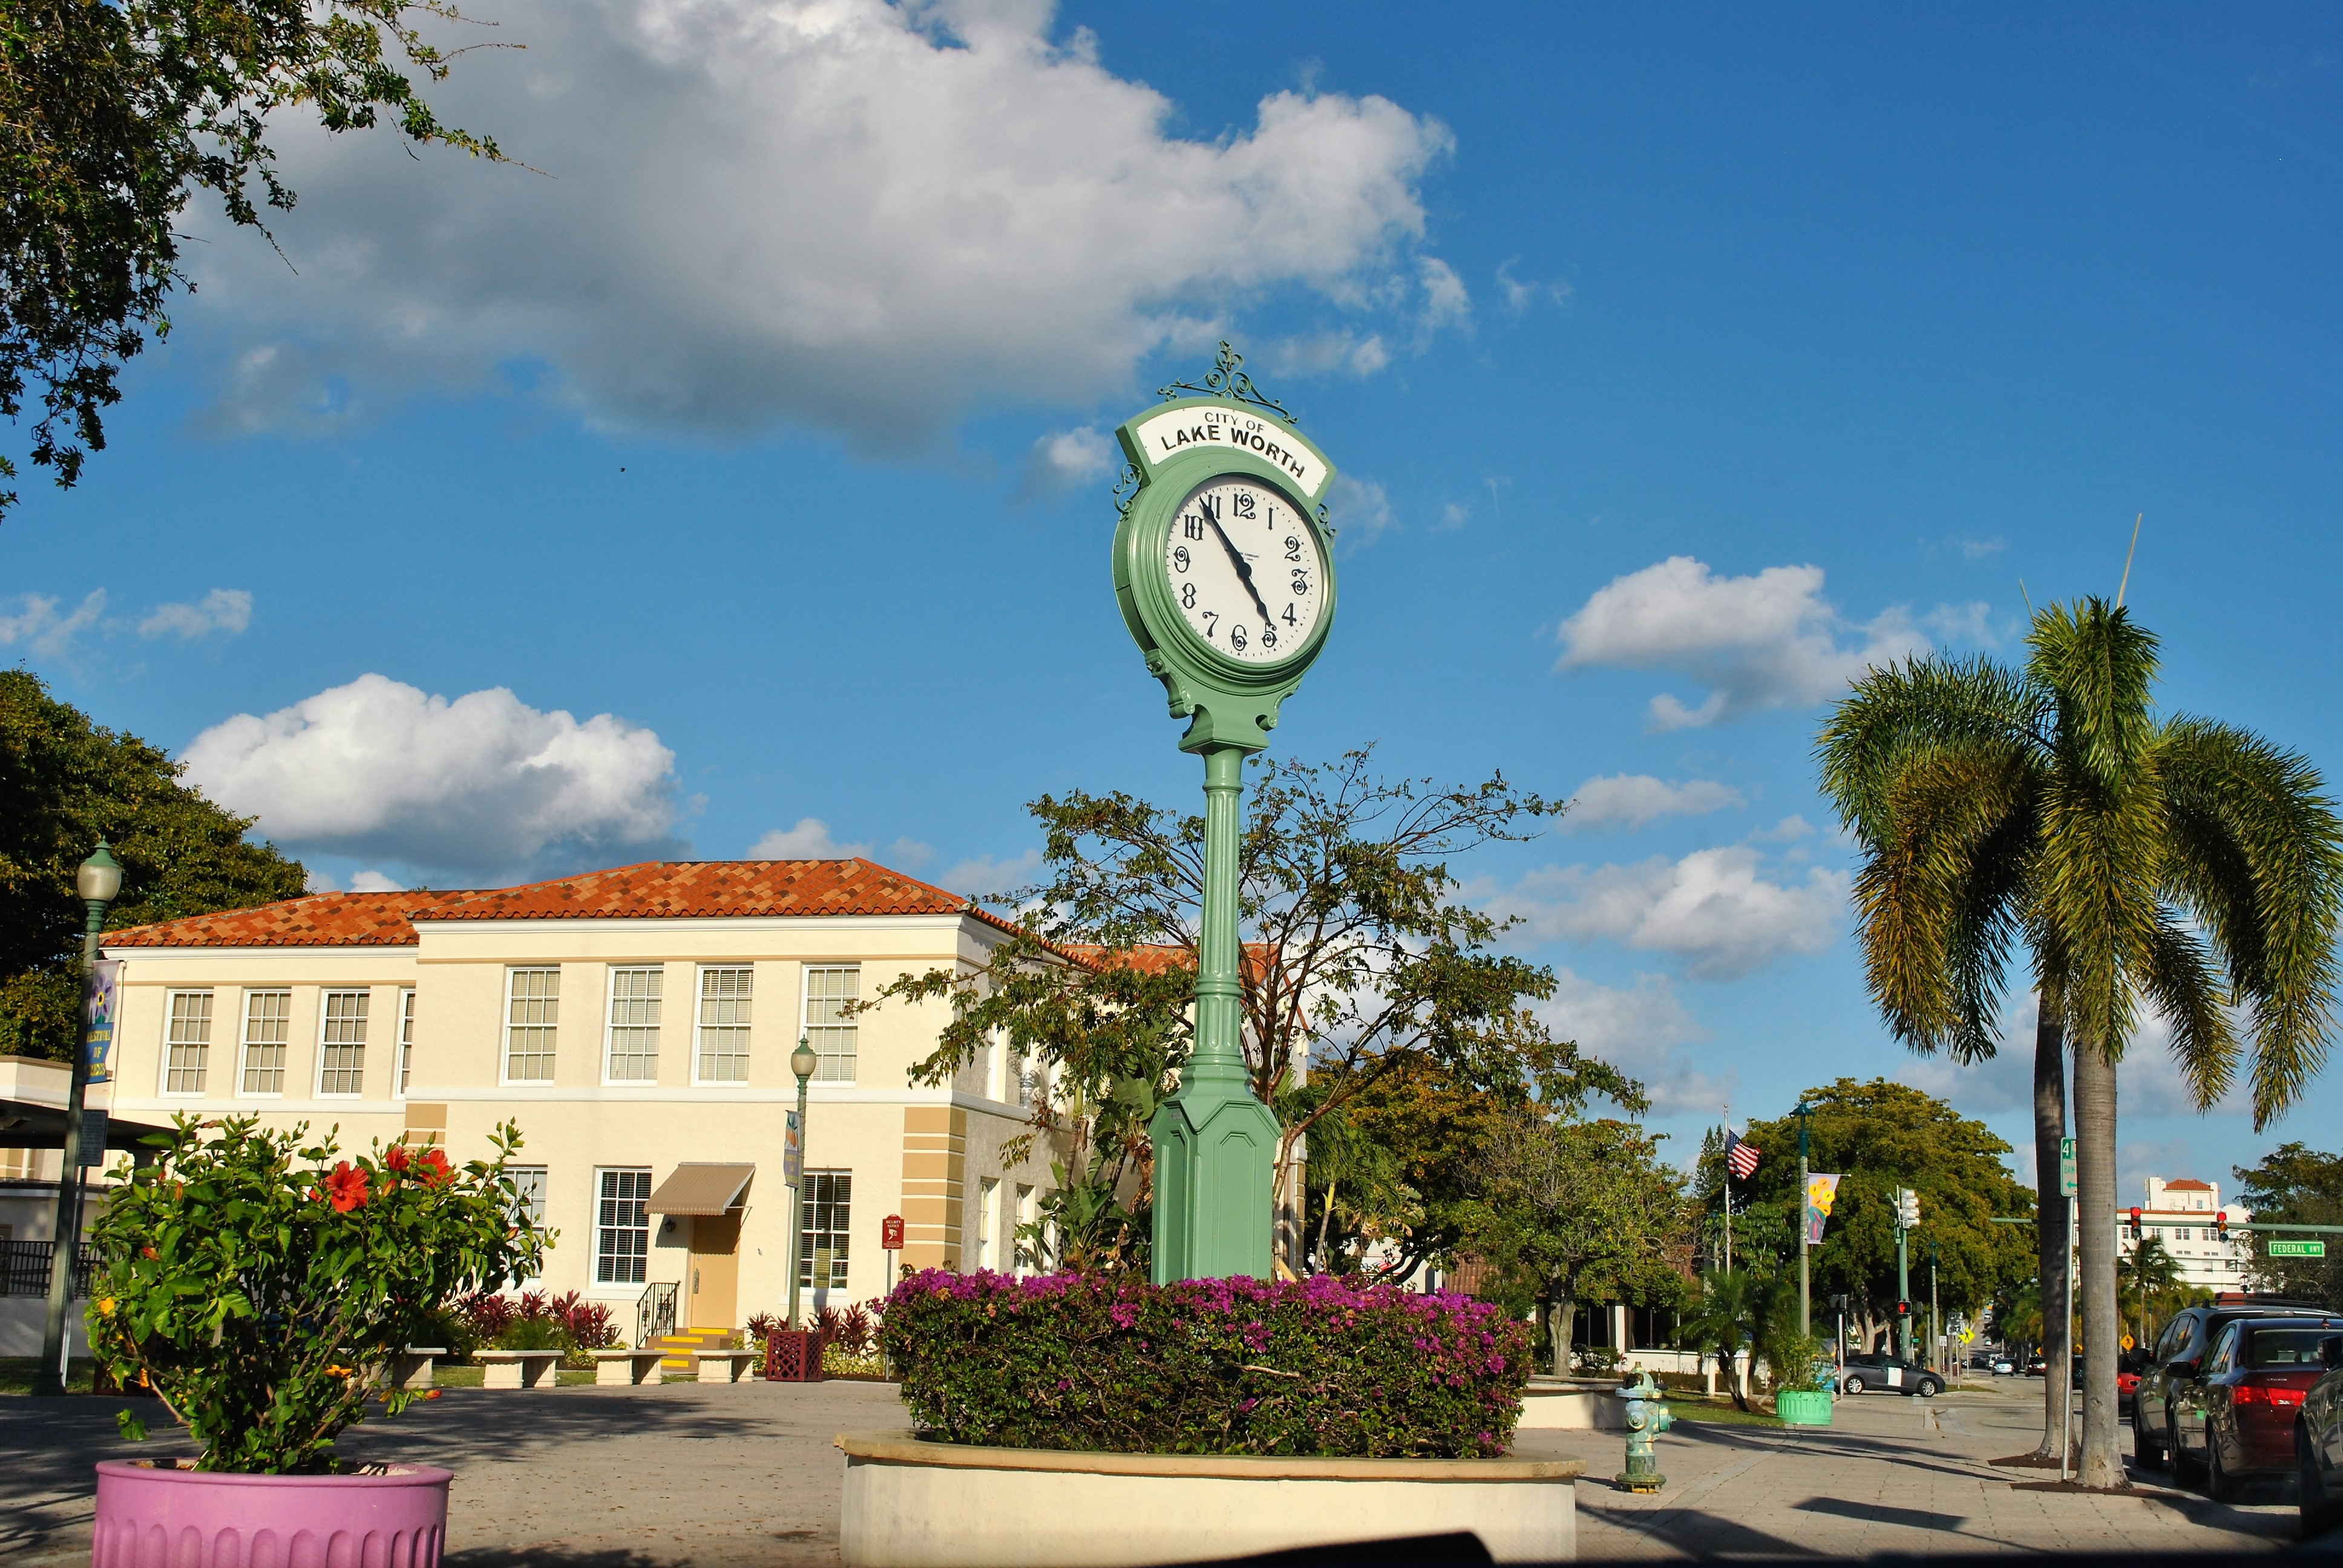 Today 39 S Events In Pembroke Park Fl Concerts Arts Wikido